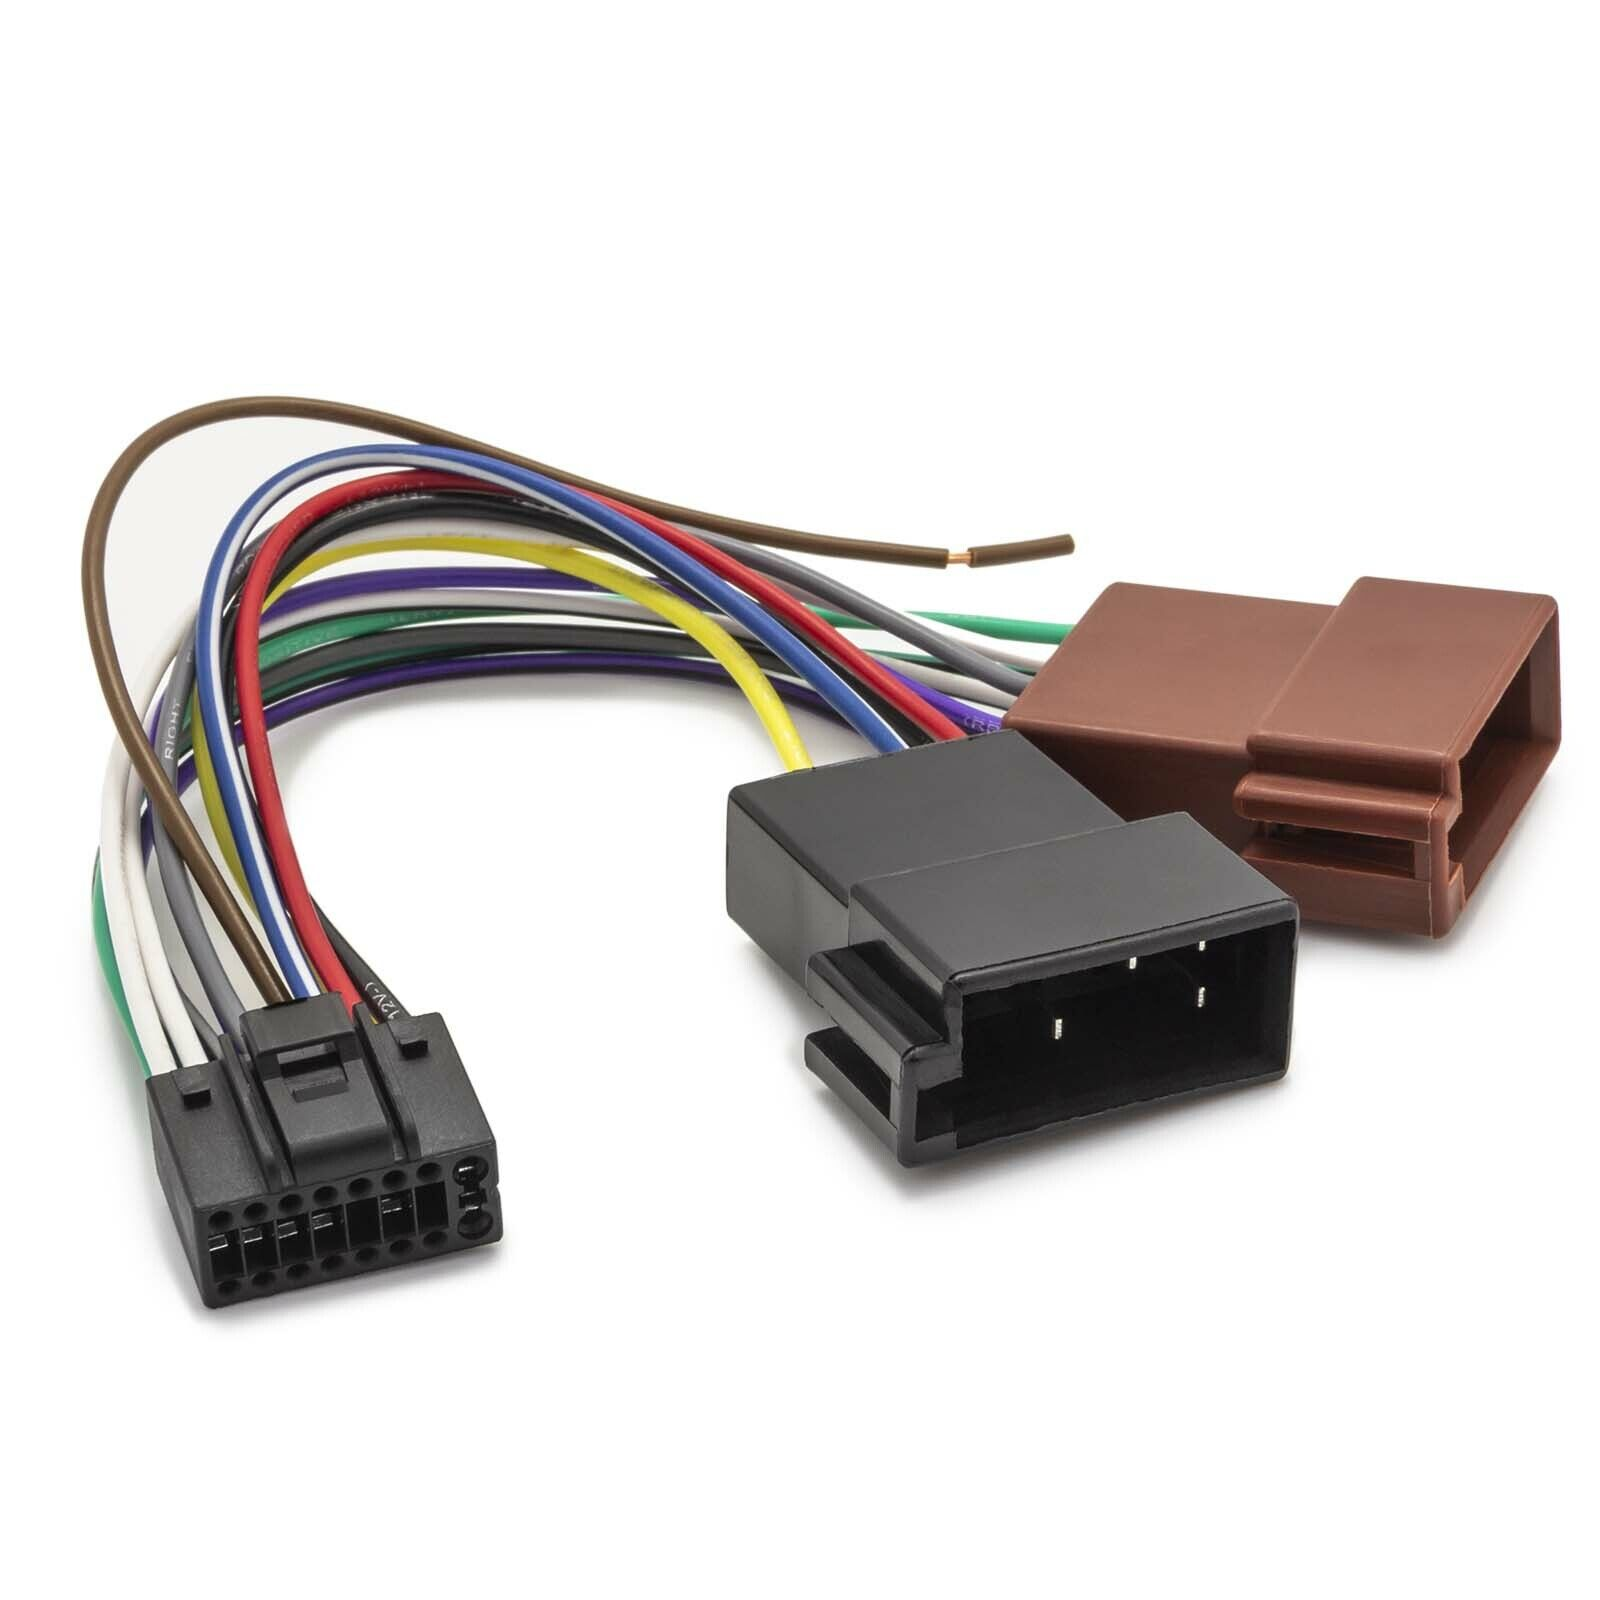 Jvc Kddv 5000 5101 Car Radio Stereo Iso Wiring Loom Looms For Cars Adapter Cable Plug And Play Din 16 Pin